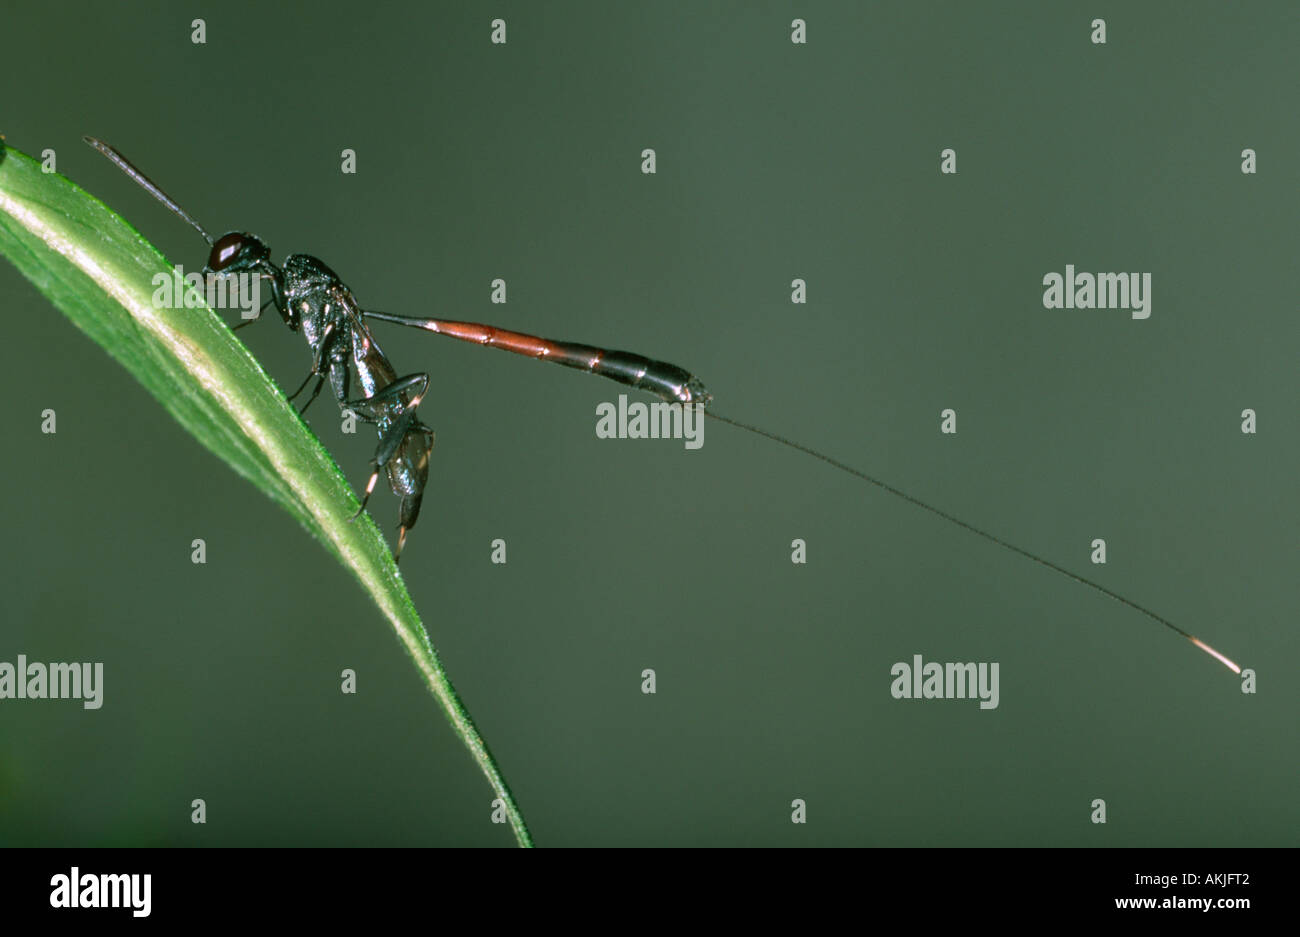 Hymenopteran, Gasteruption jaculator. Female showing long ovipositor - Stock Image